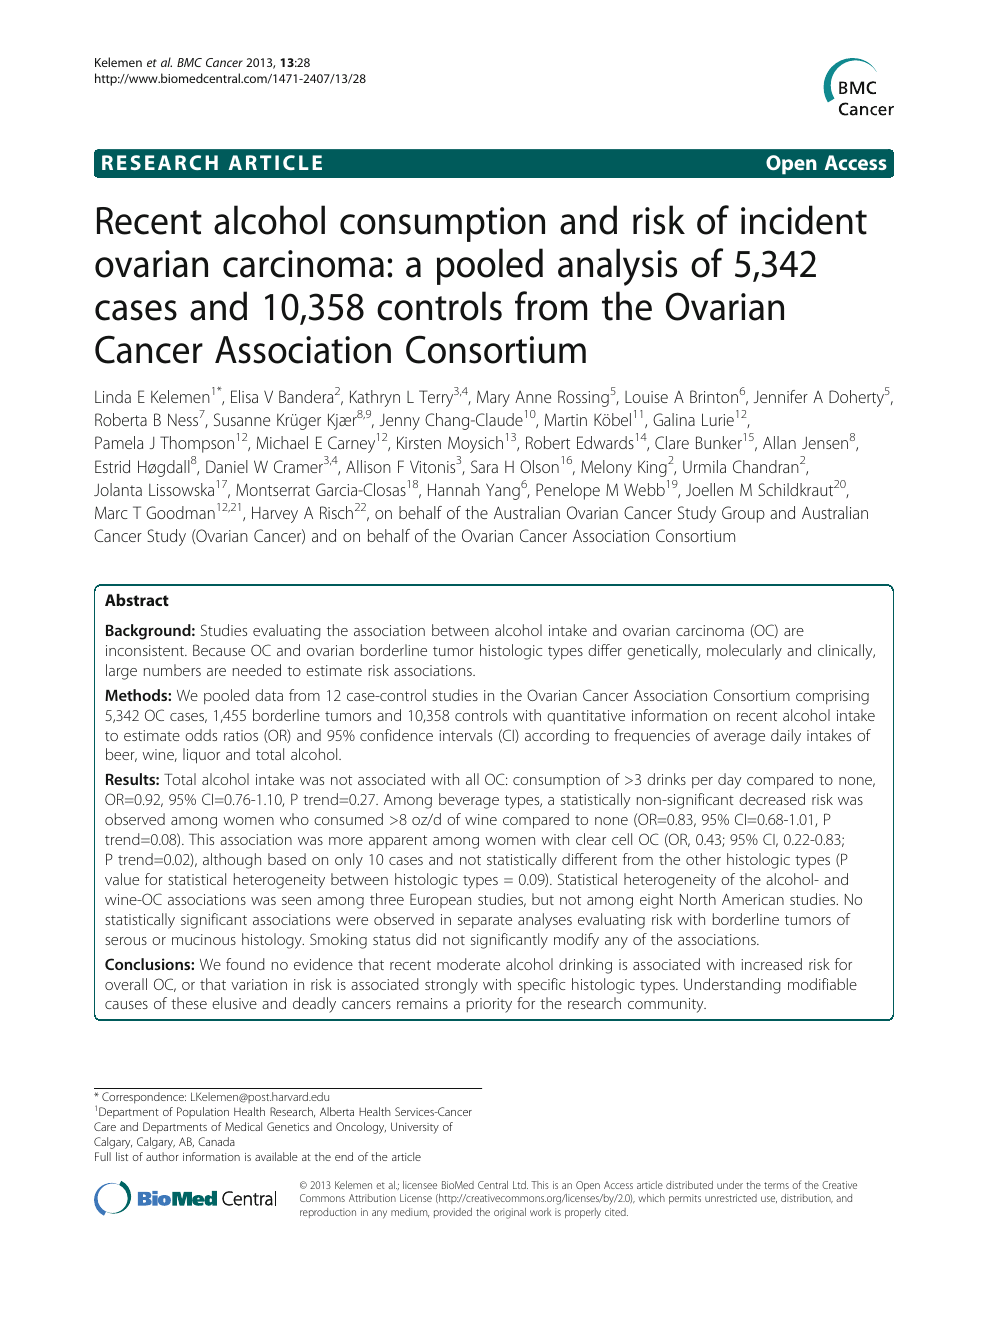 Recent alcohol consumption and risk of incident ovarian carcinoma: a